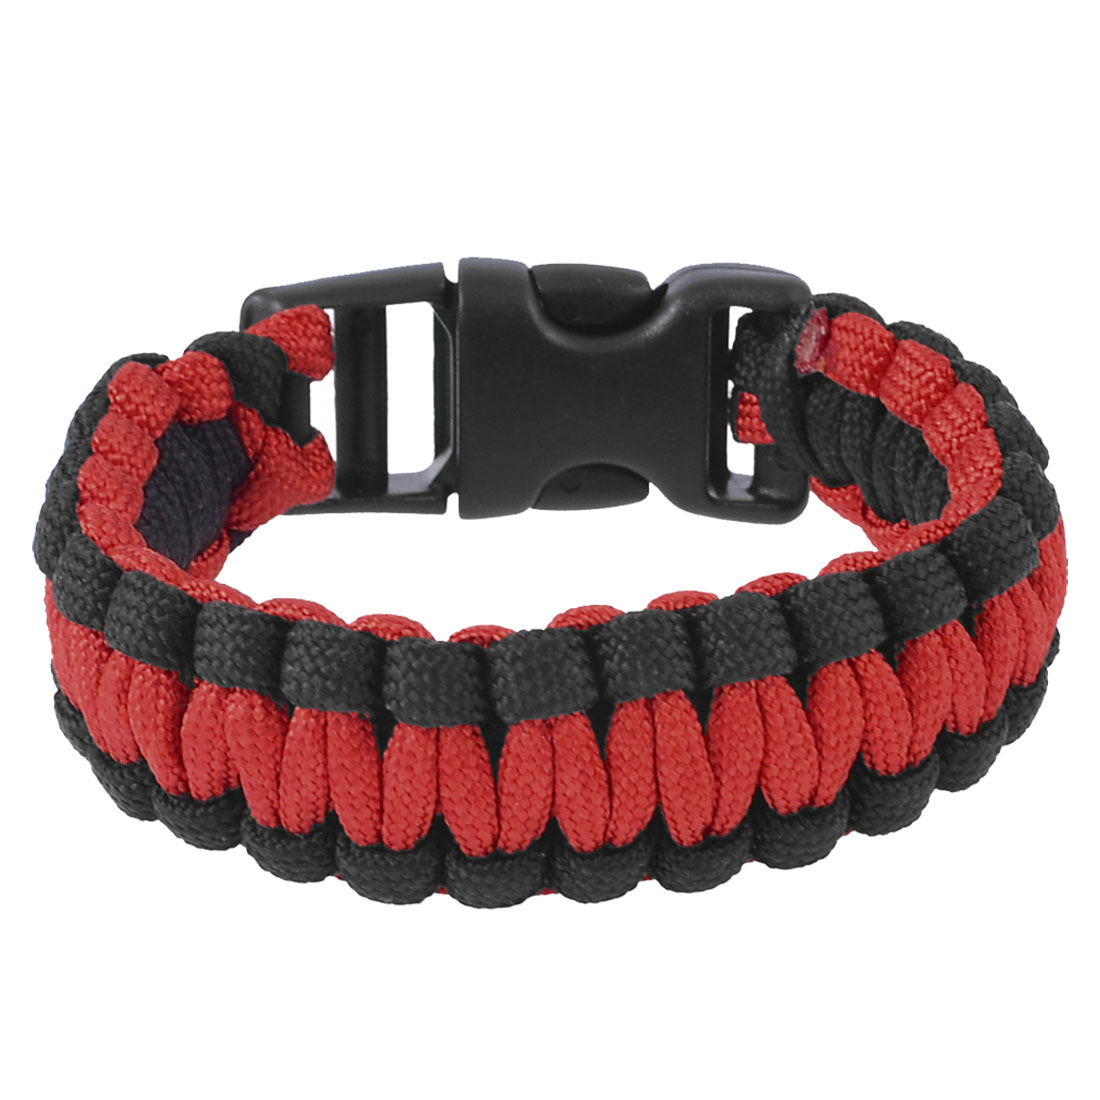 Whistle Buckle Black Red Cobra Weave Nylon Rescue Survival Bracelet